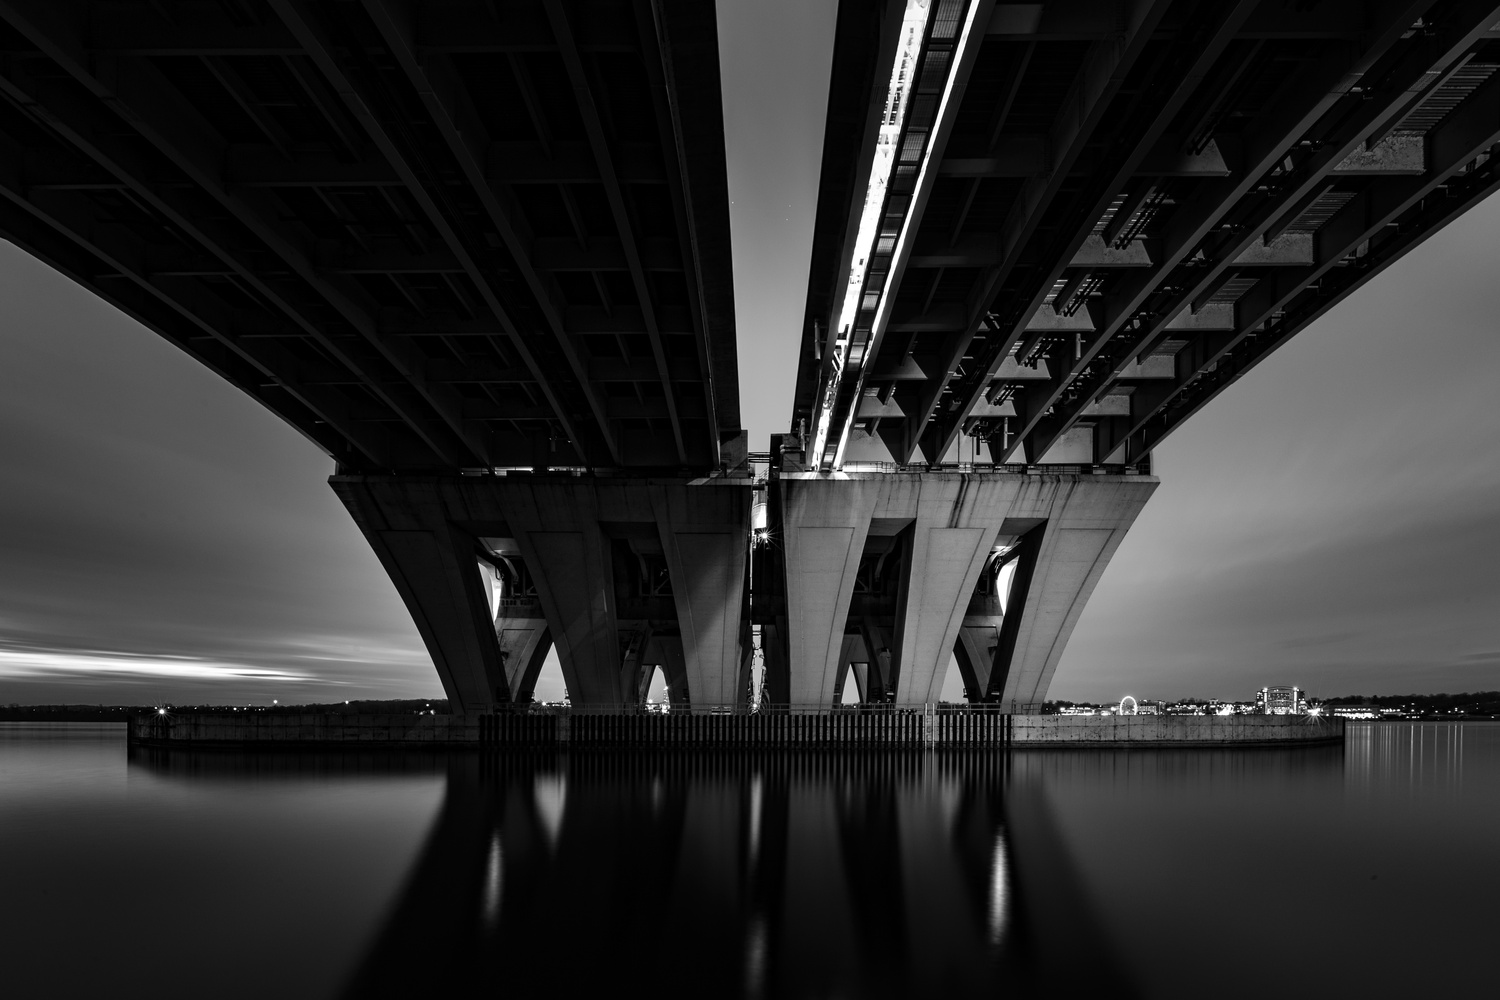 Under the Bridge by Mark Alan Andre